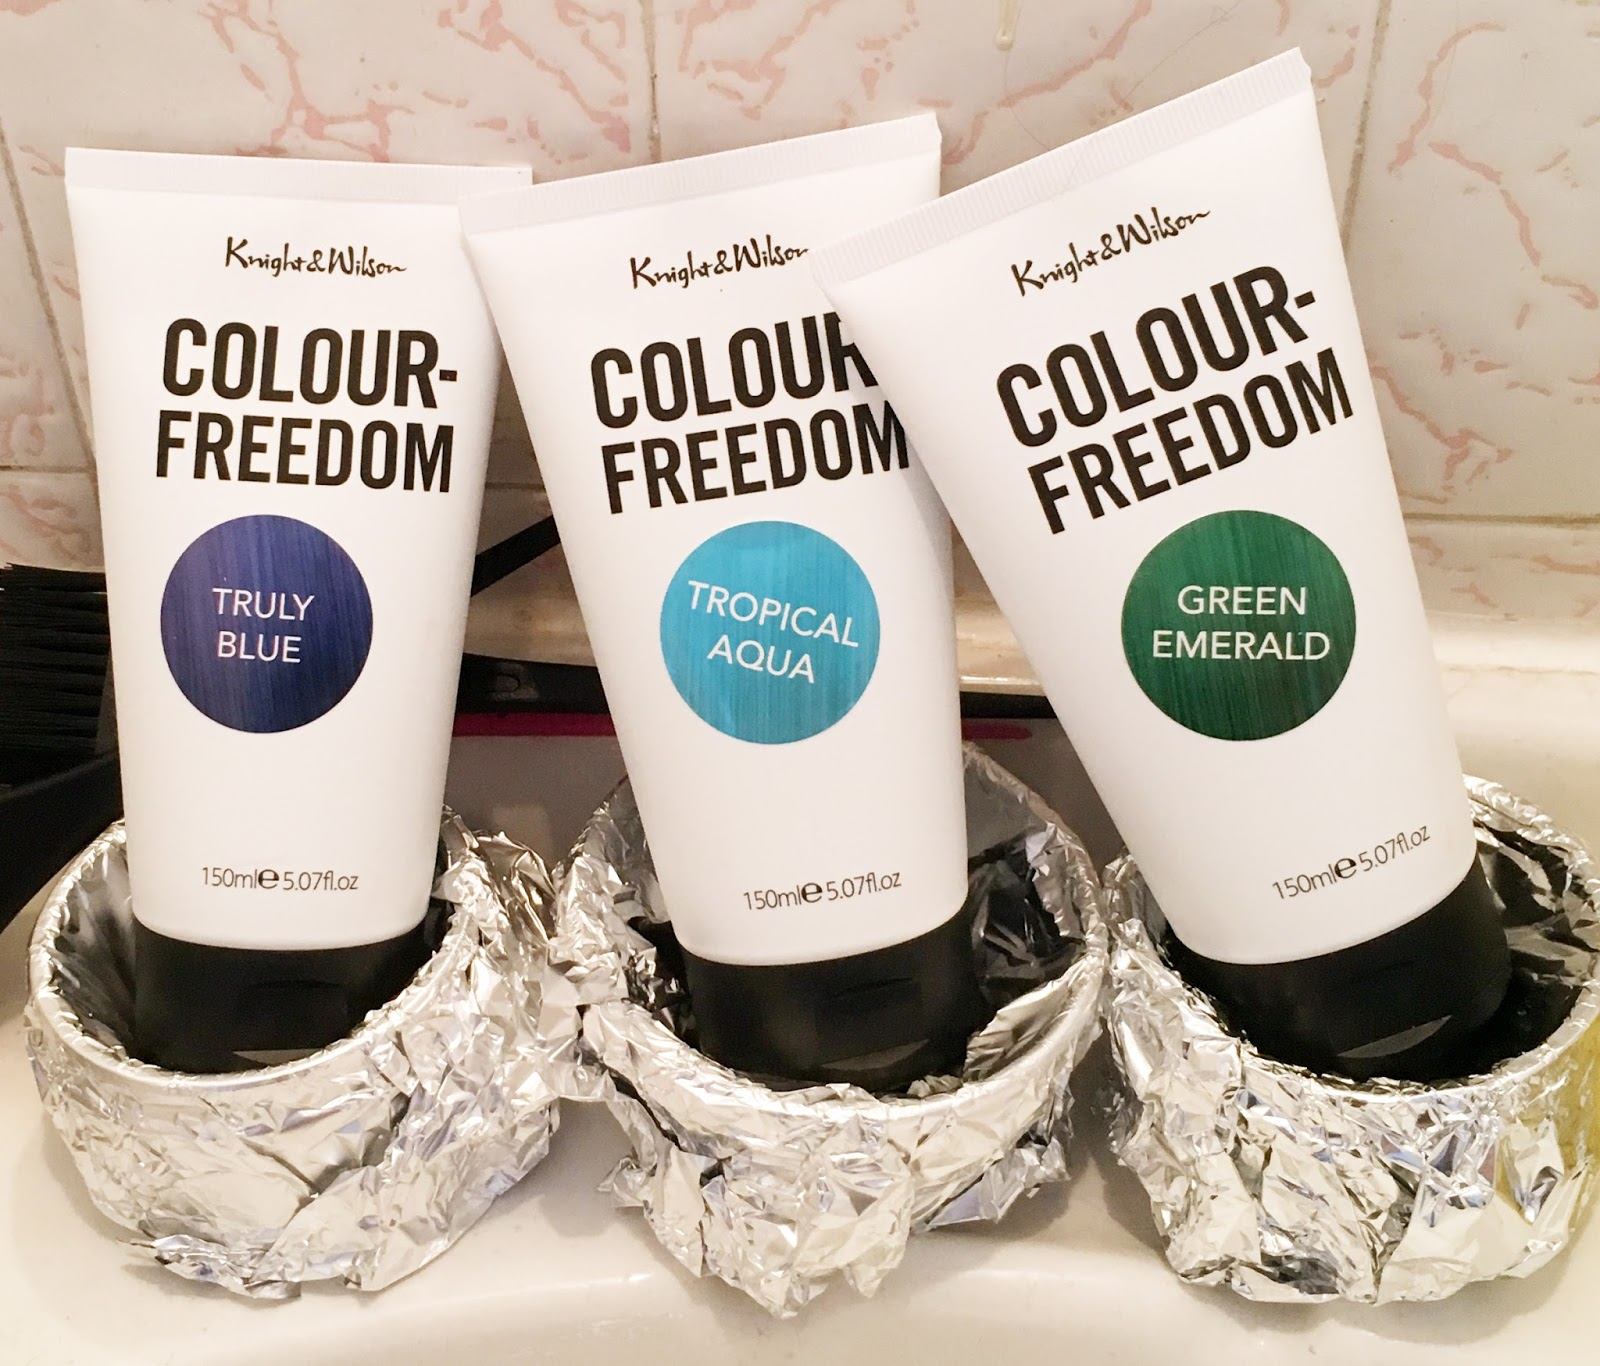 All Shook Up - Hair Dye Fun with Colour Freedom at Superdrug